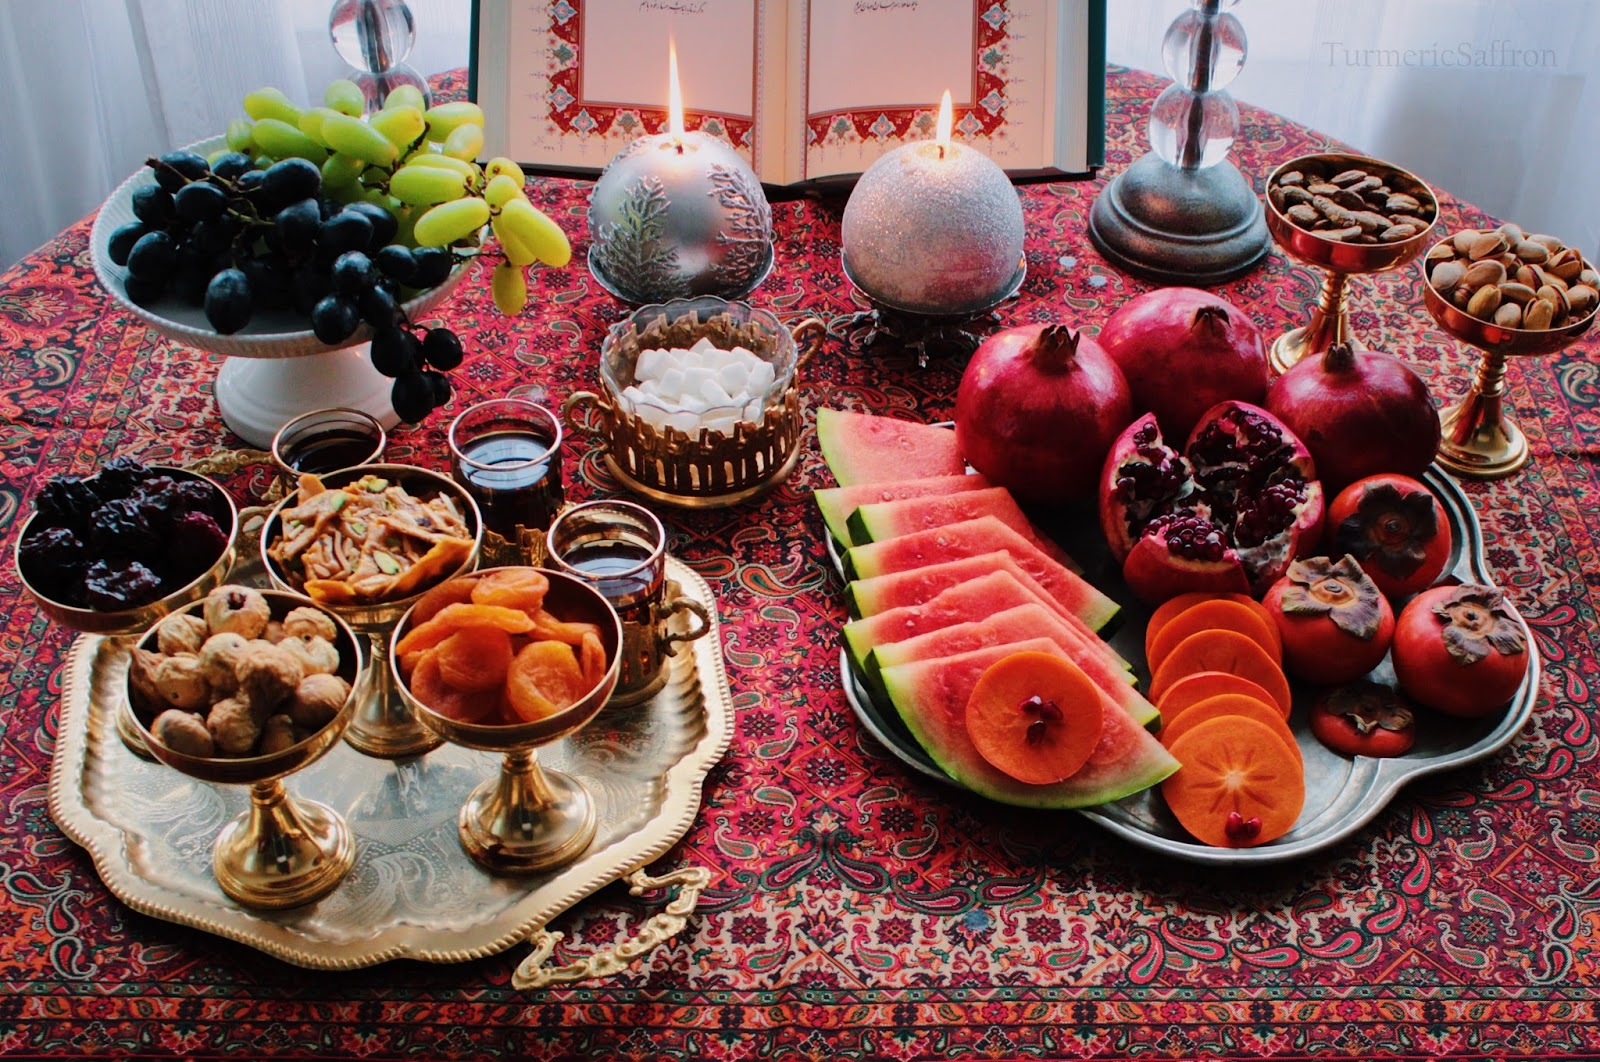 My Mother Always Had The Yalda Spread On Our Dining Room Table And It Was Winter Watermelon Pomegranate